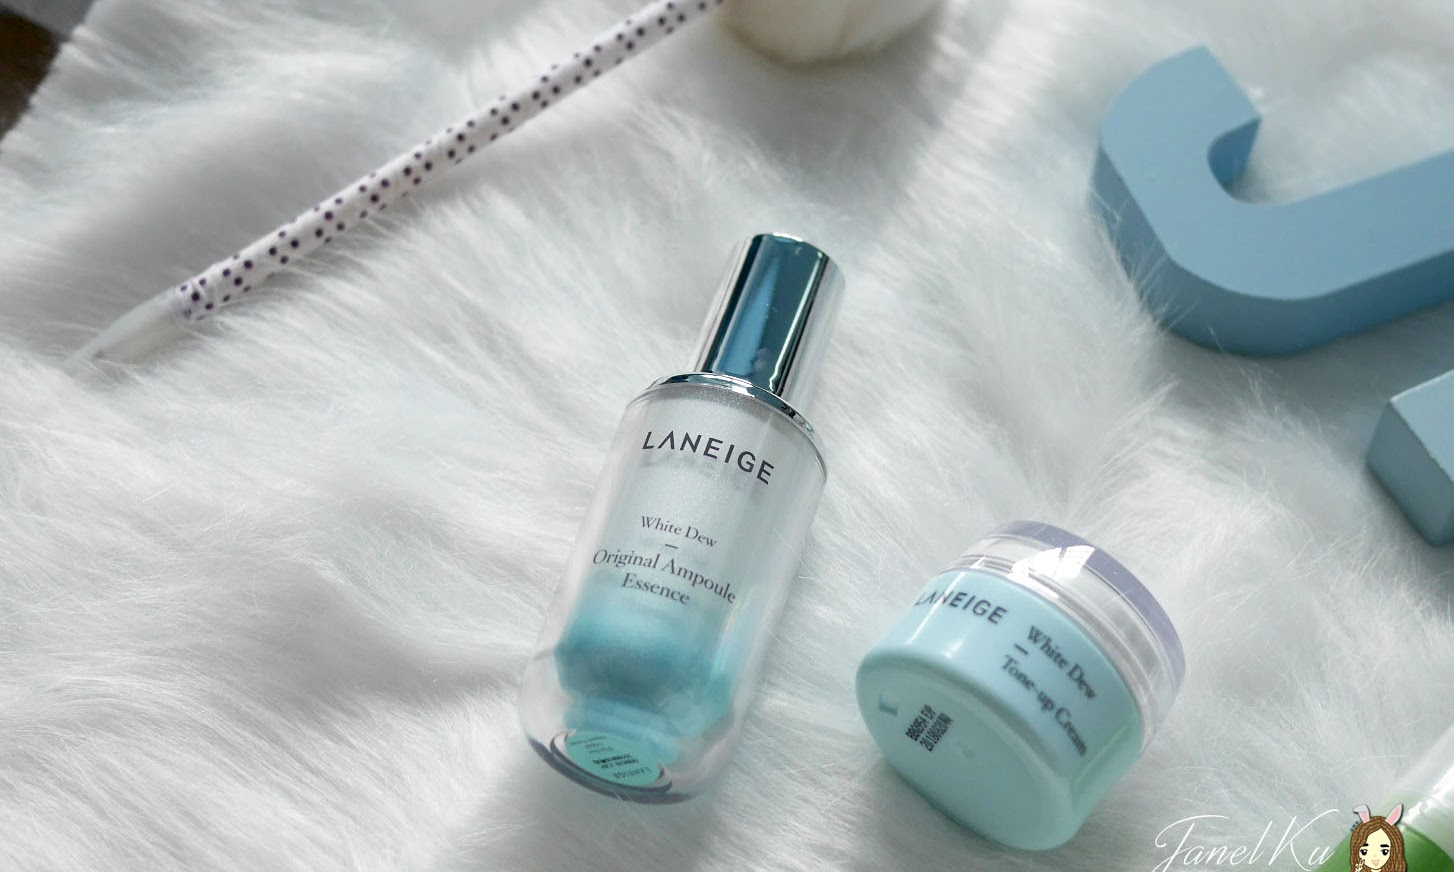 Review: Laneige's White Dew Original Ampoule Essence